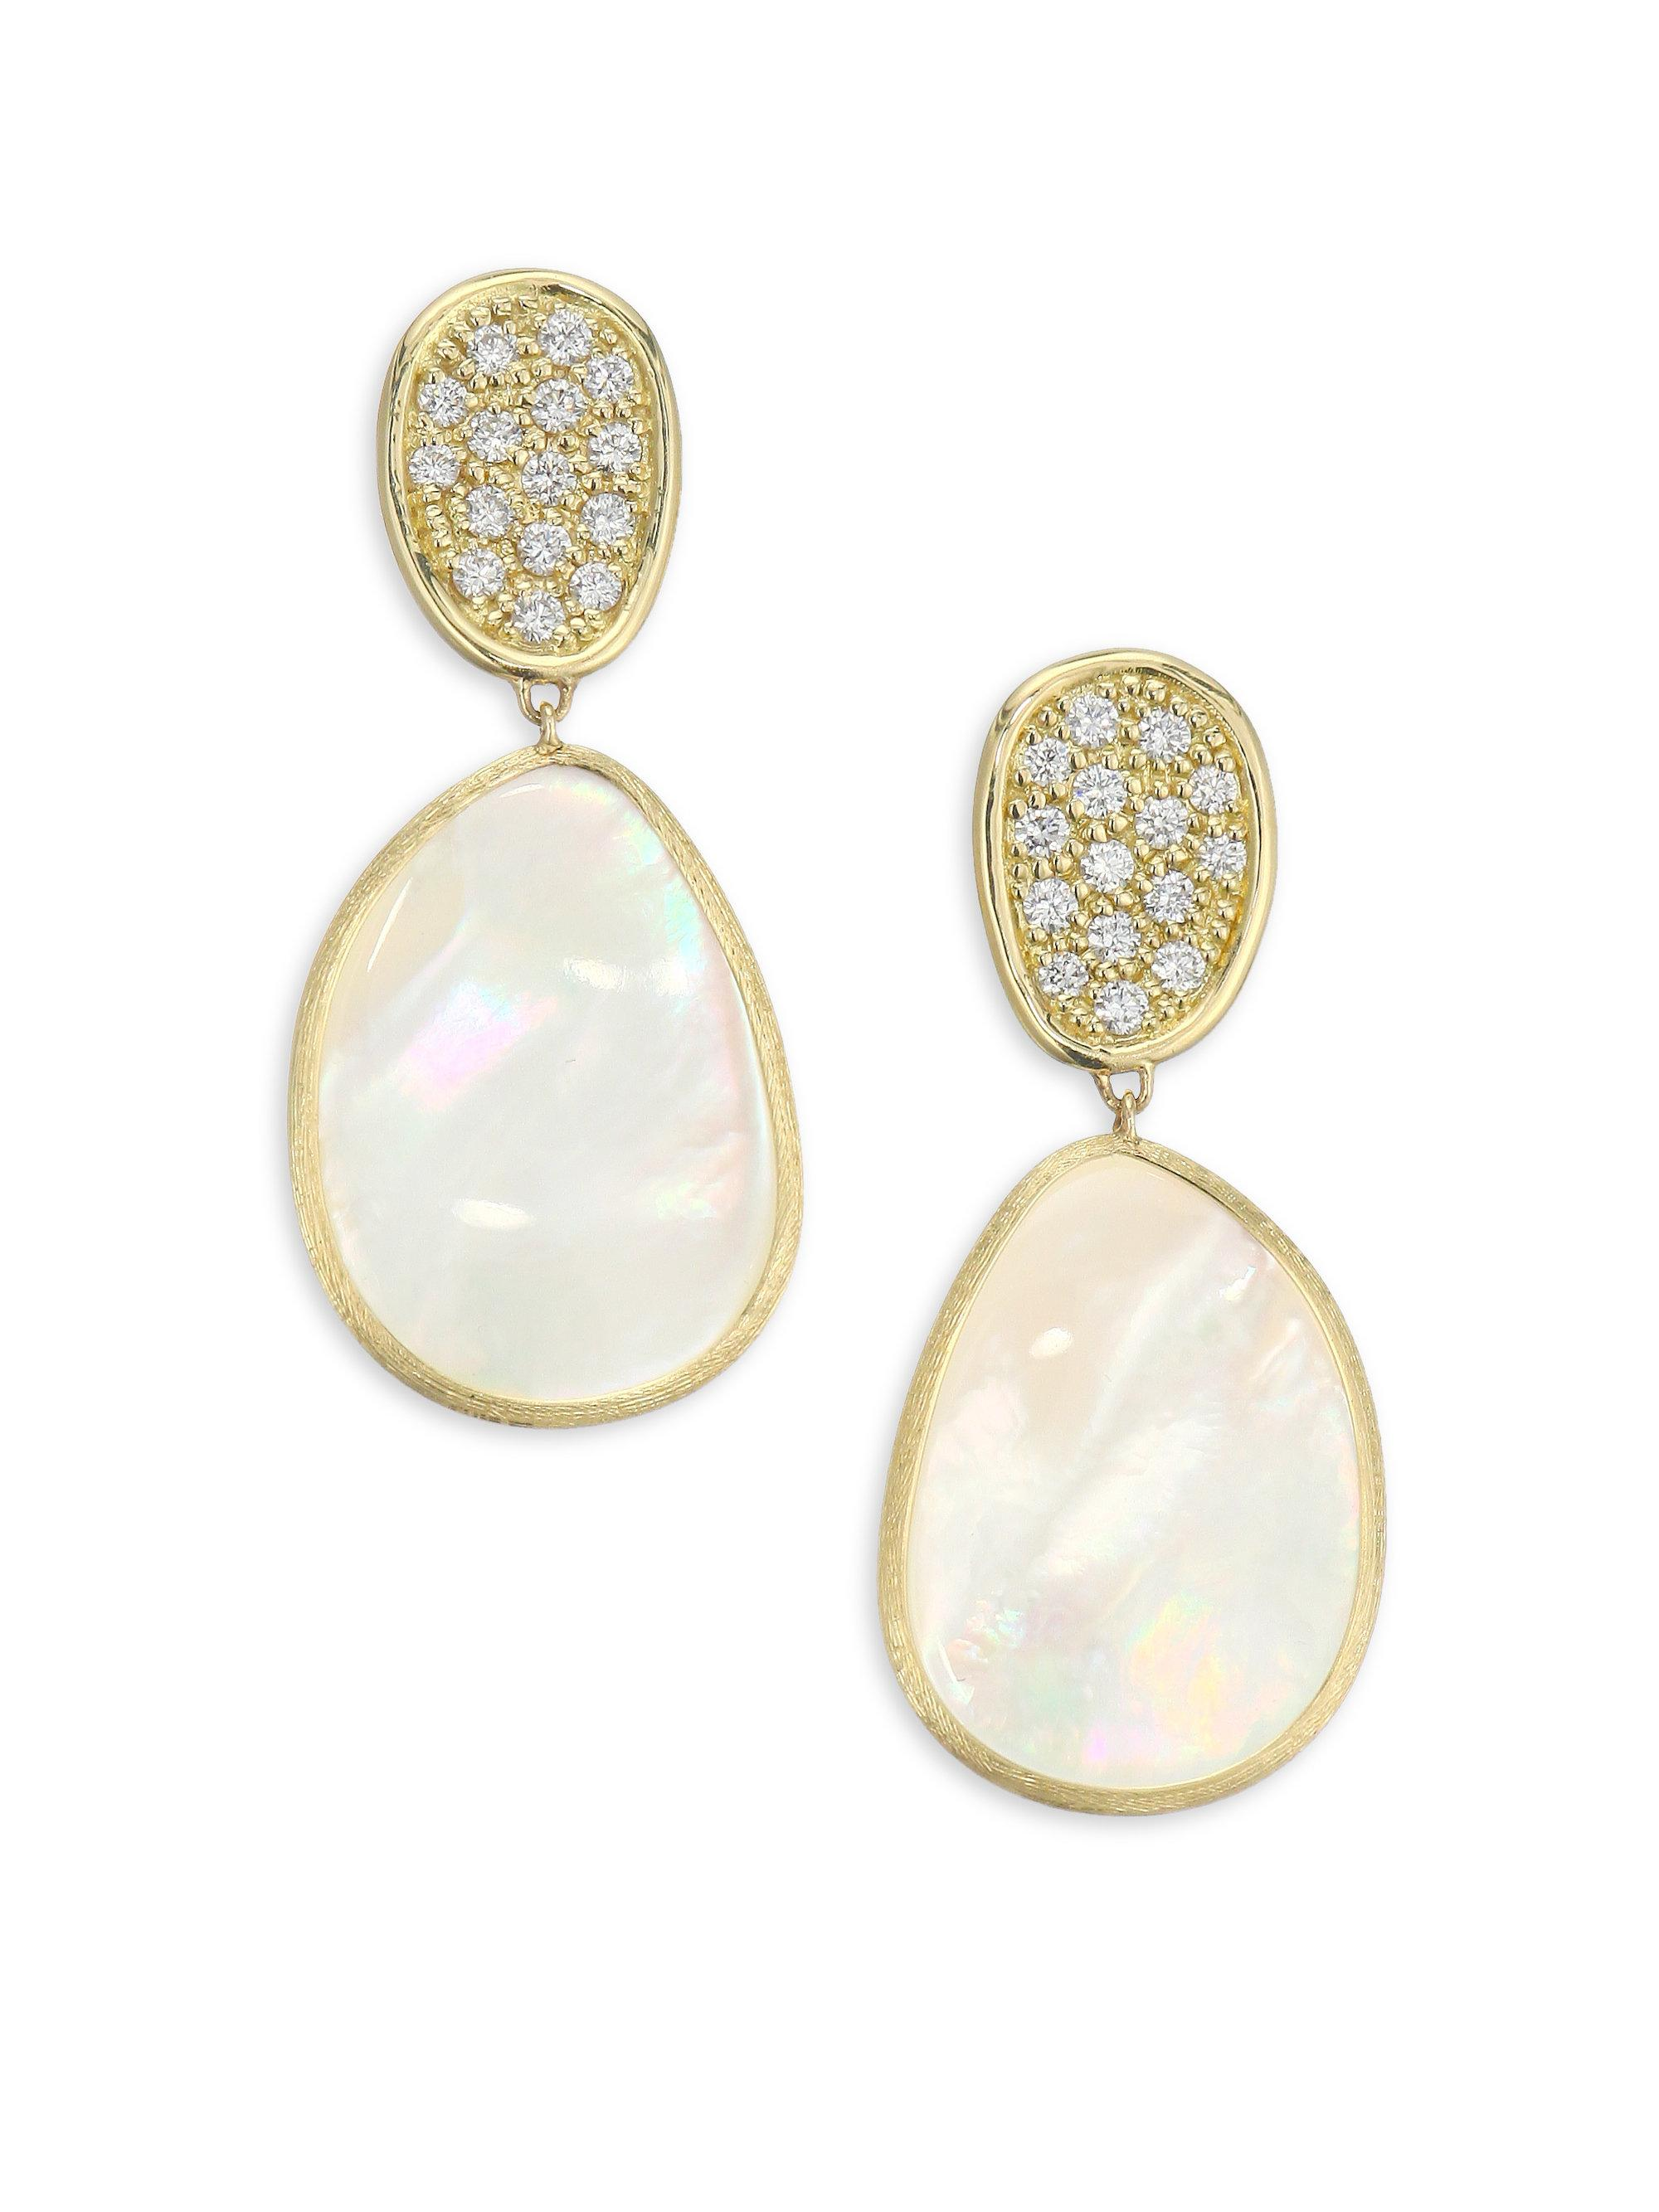 Marco Bicego Lunaria Large Mother-of-Pearl Drop Earrings in 18K Gold BdEWuS63L